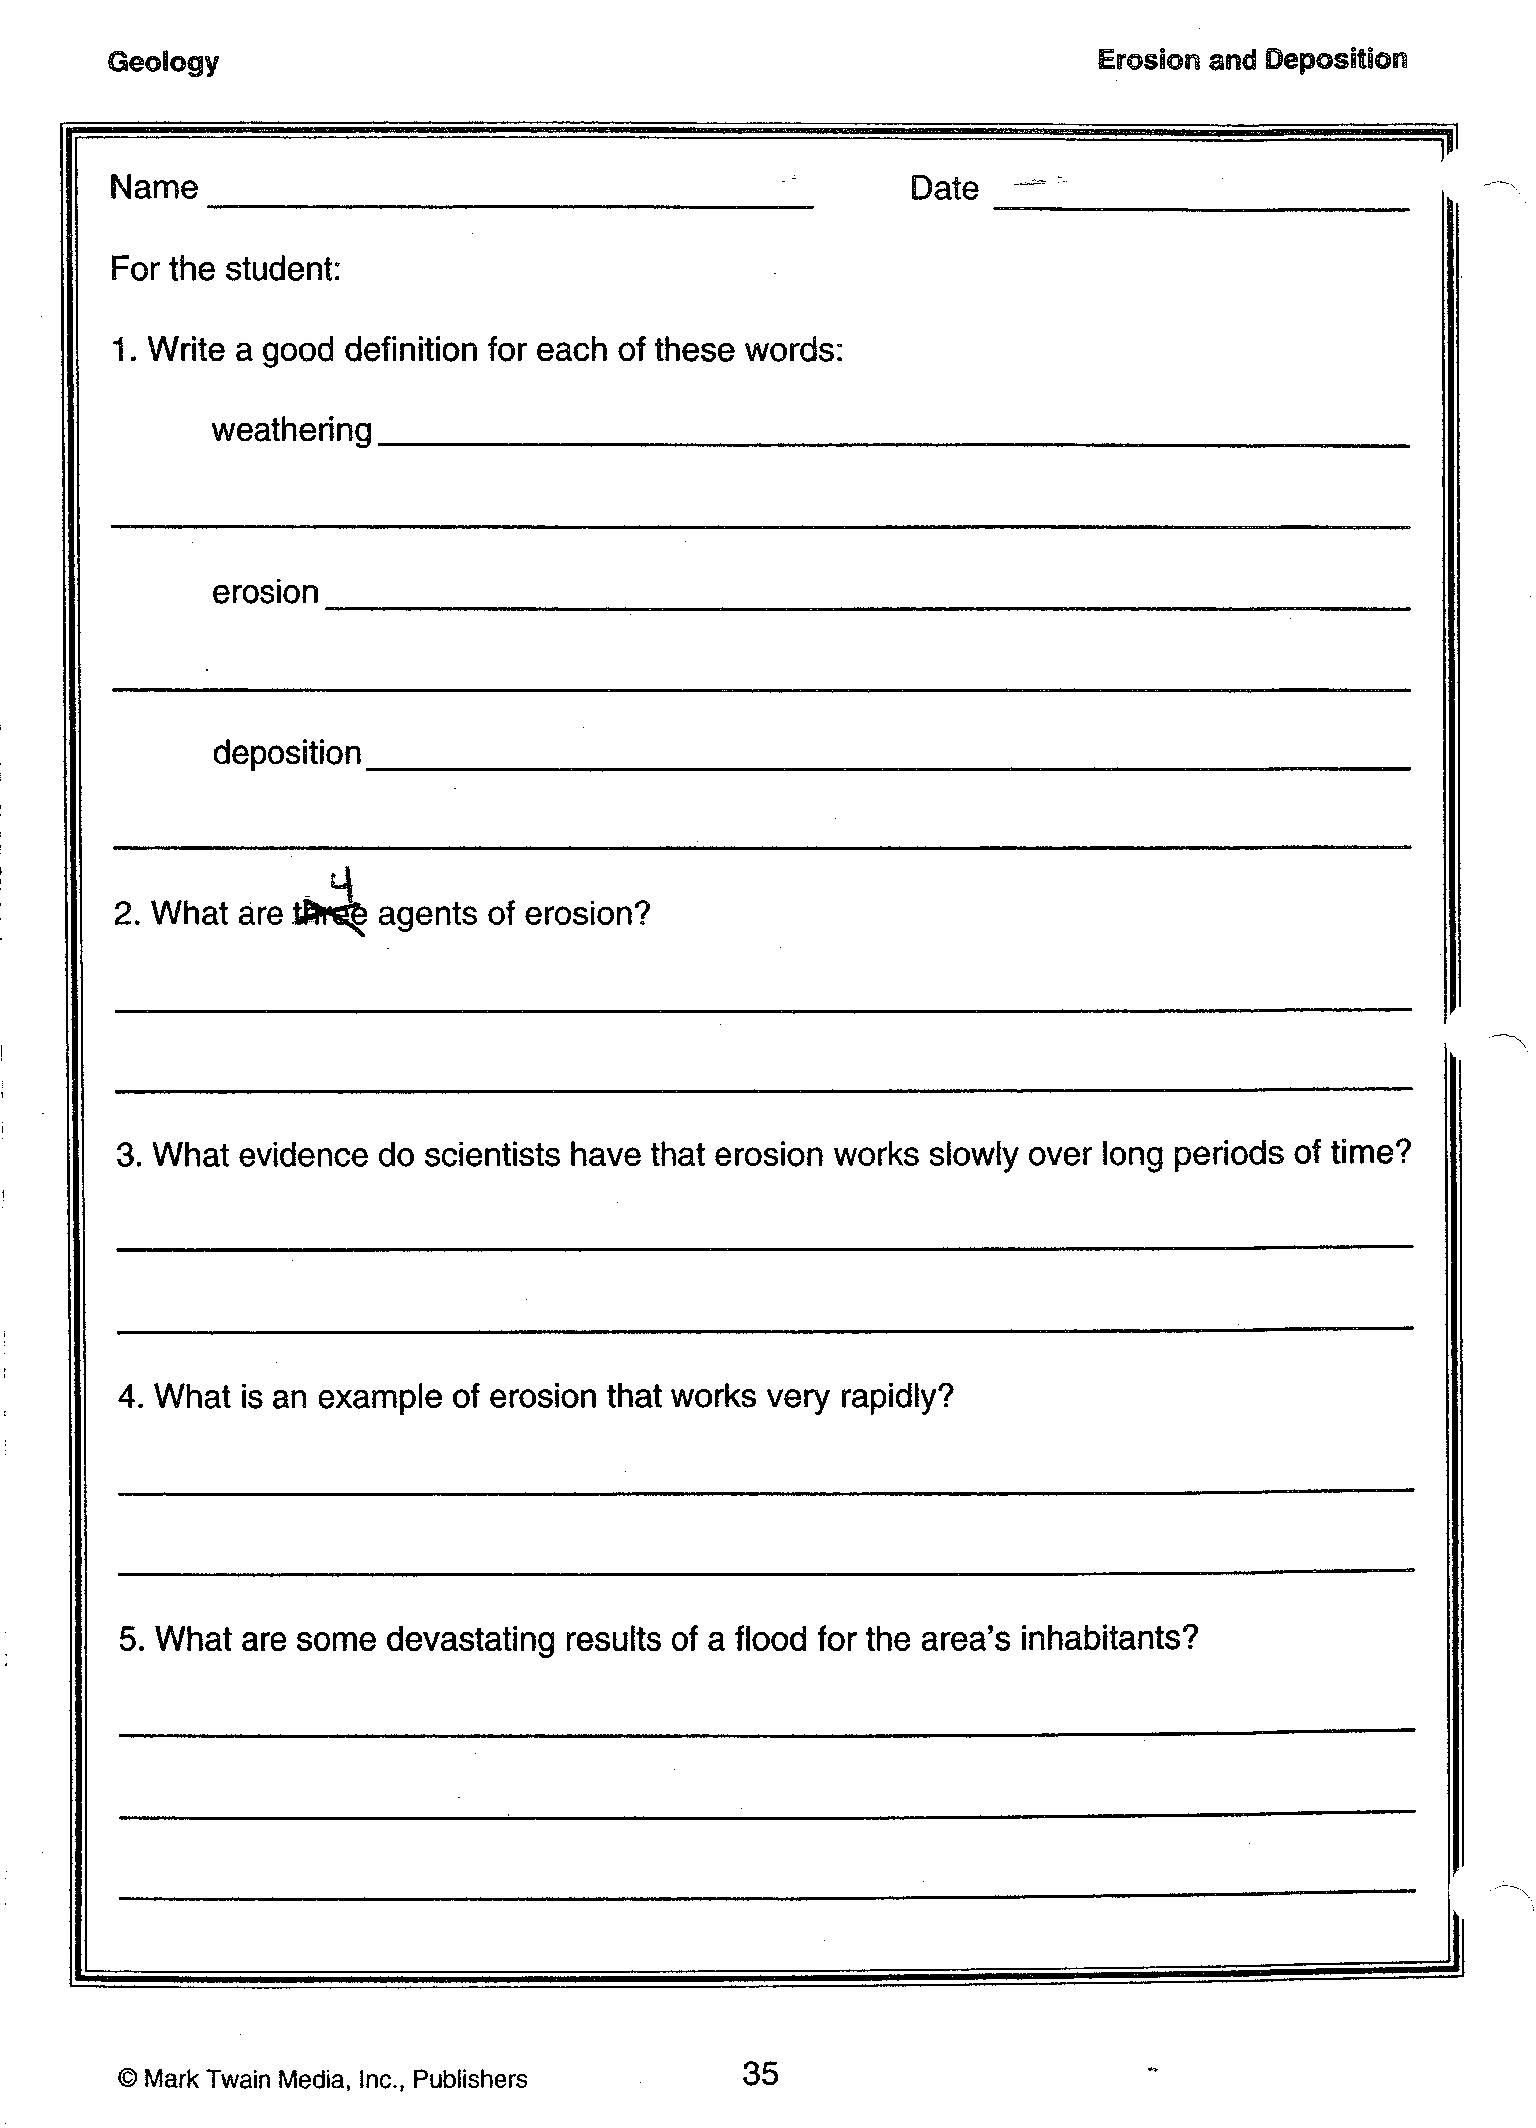 Energy Worksheets Middle School Pdf Erosion and Deposition Definitions 001 1536—2128